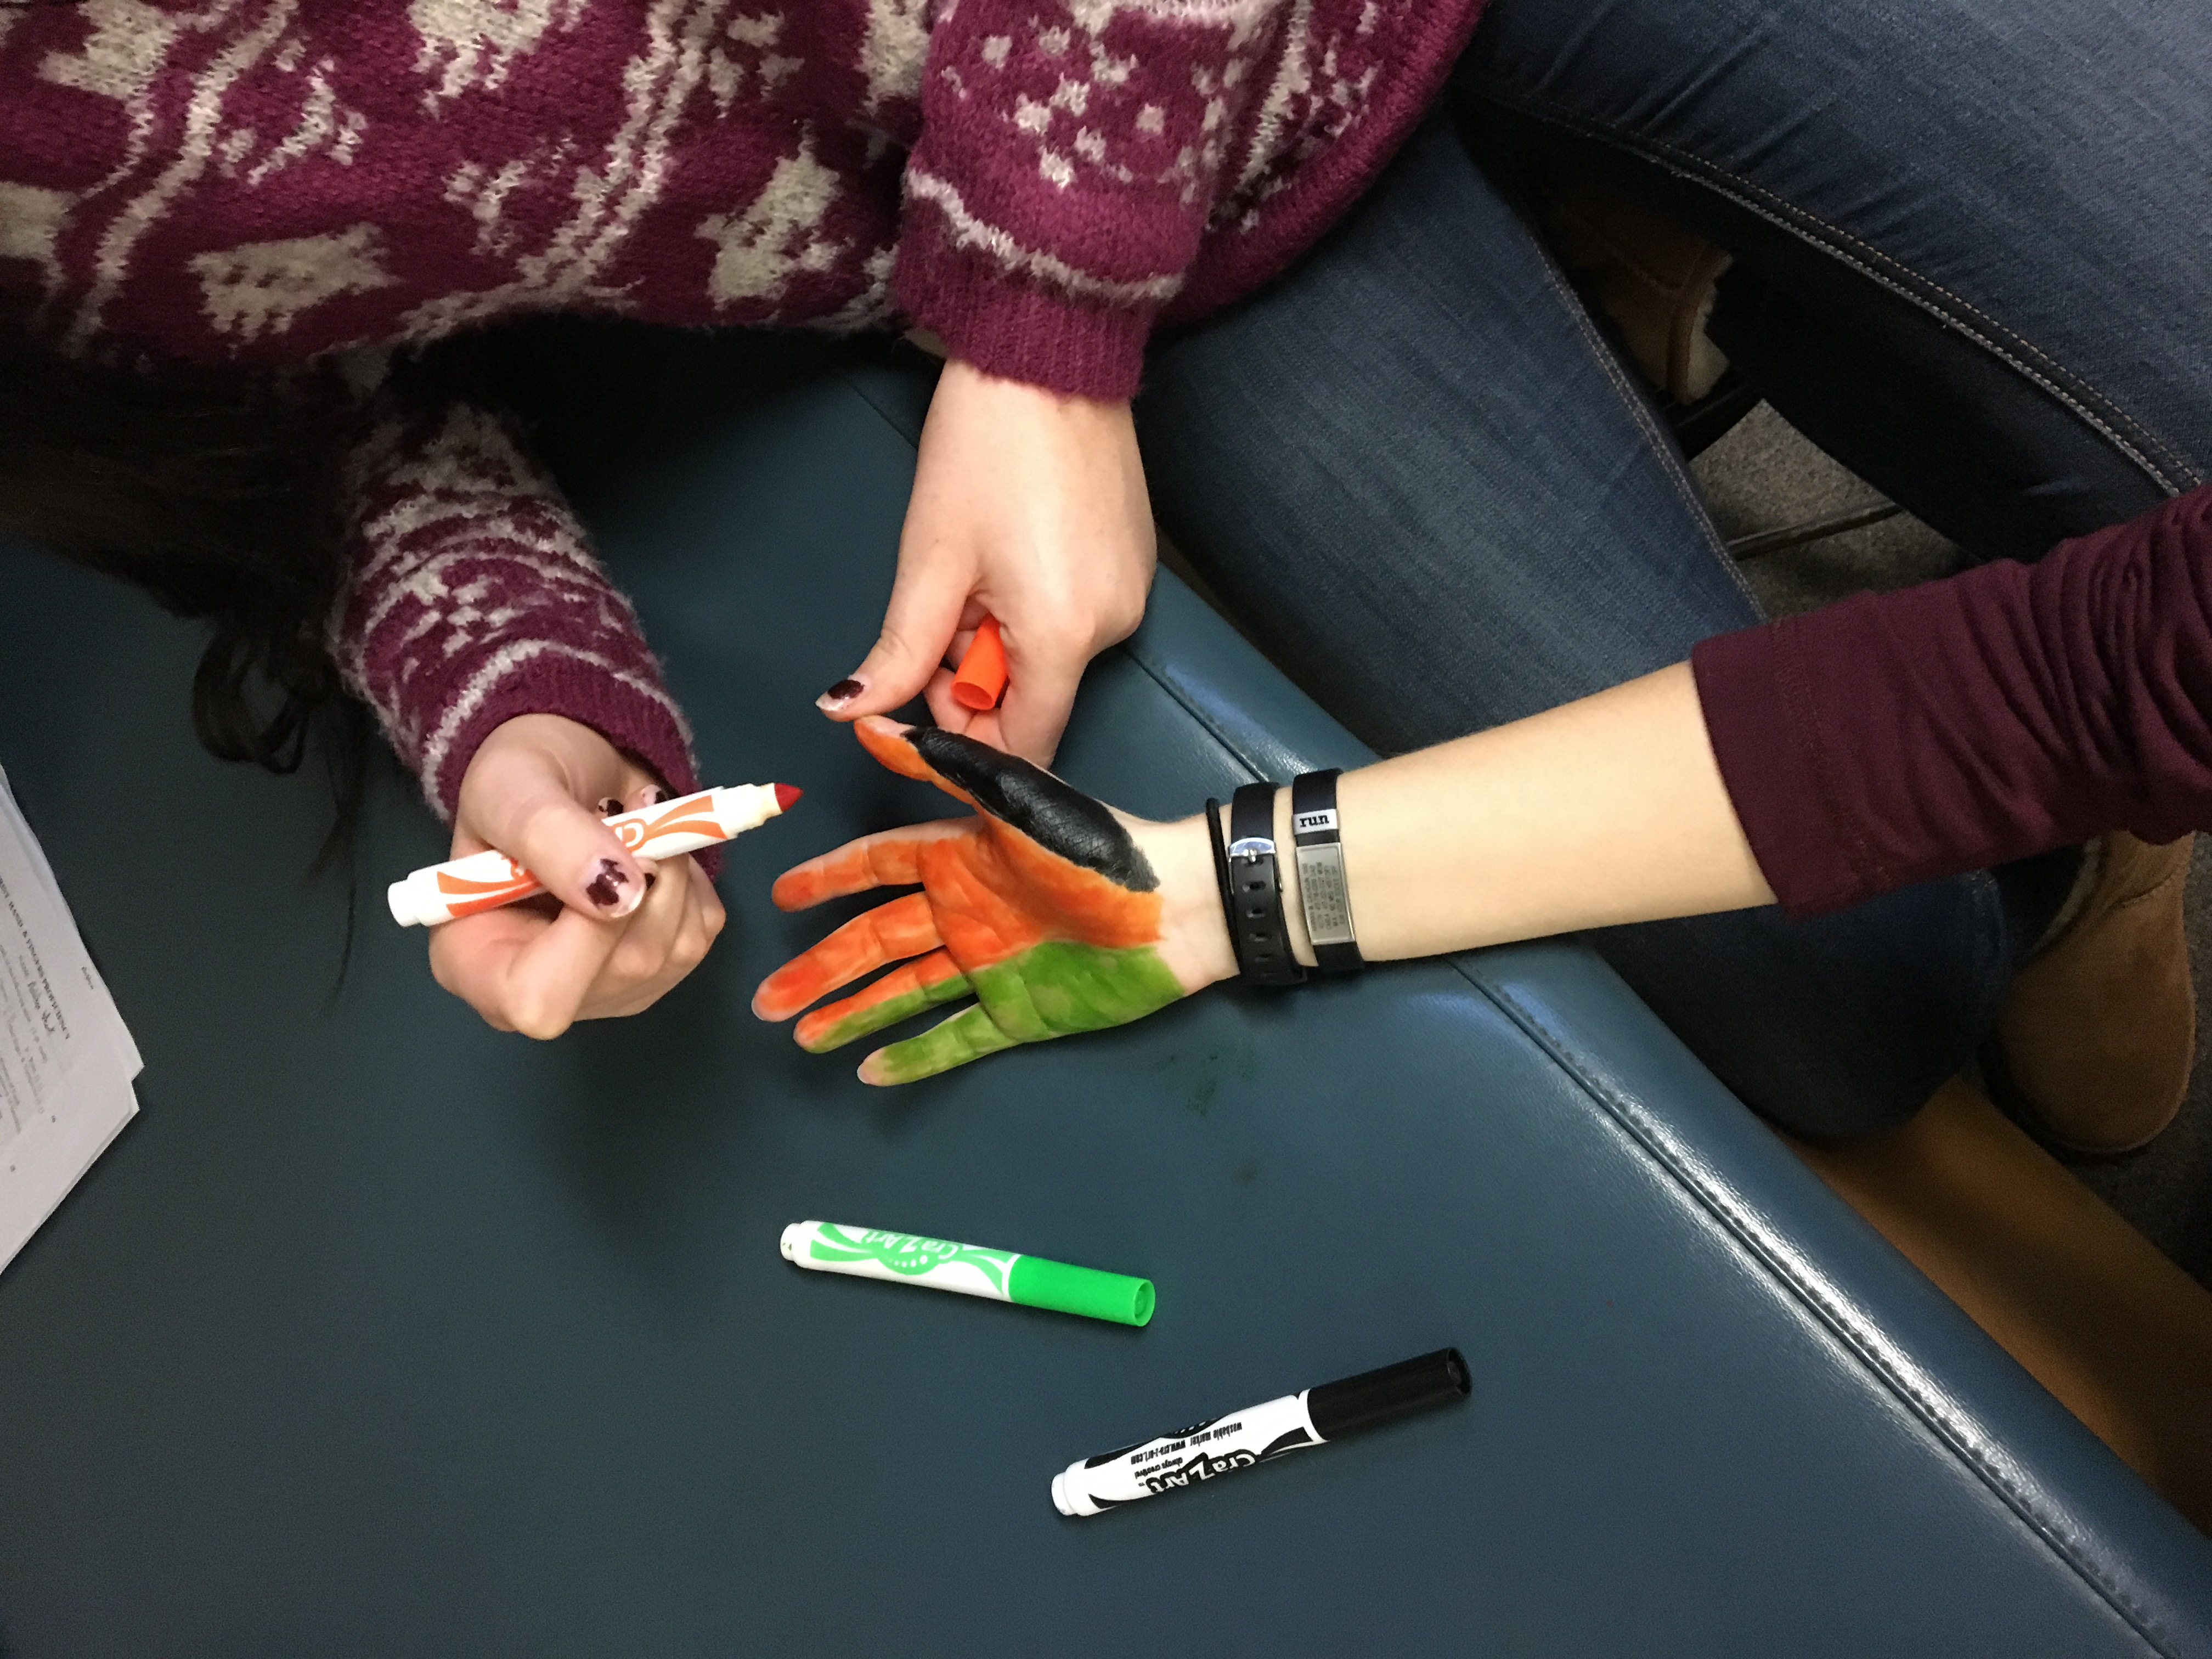 Arts and Crafts in Evaluation Class